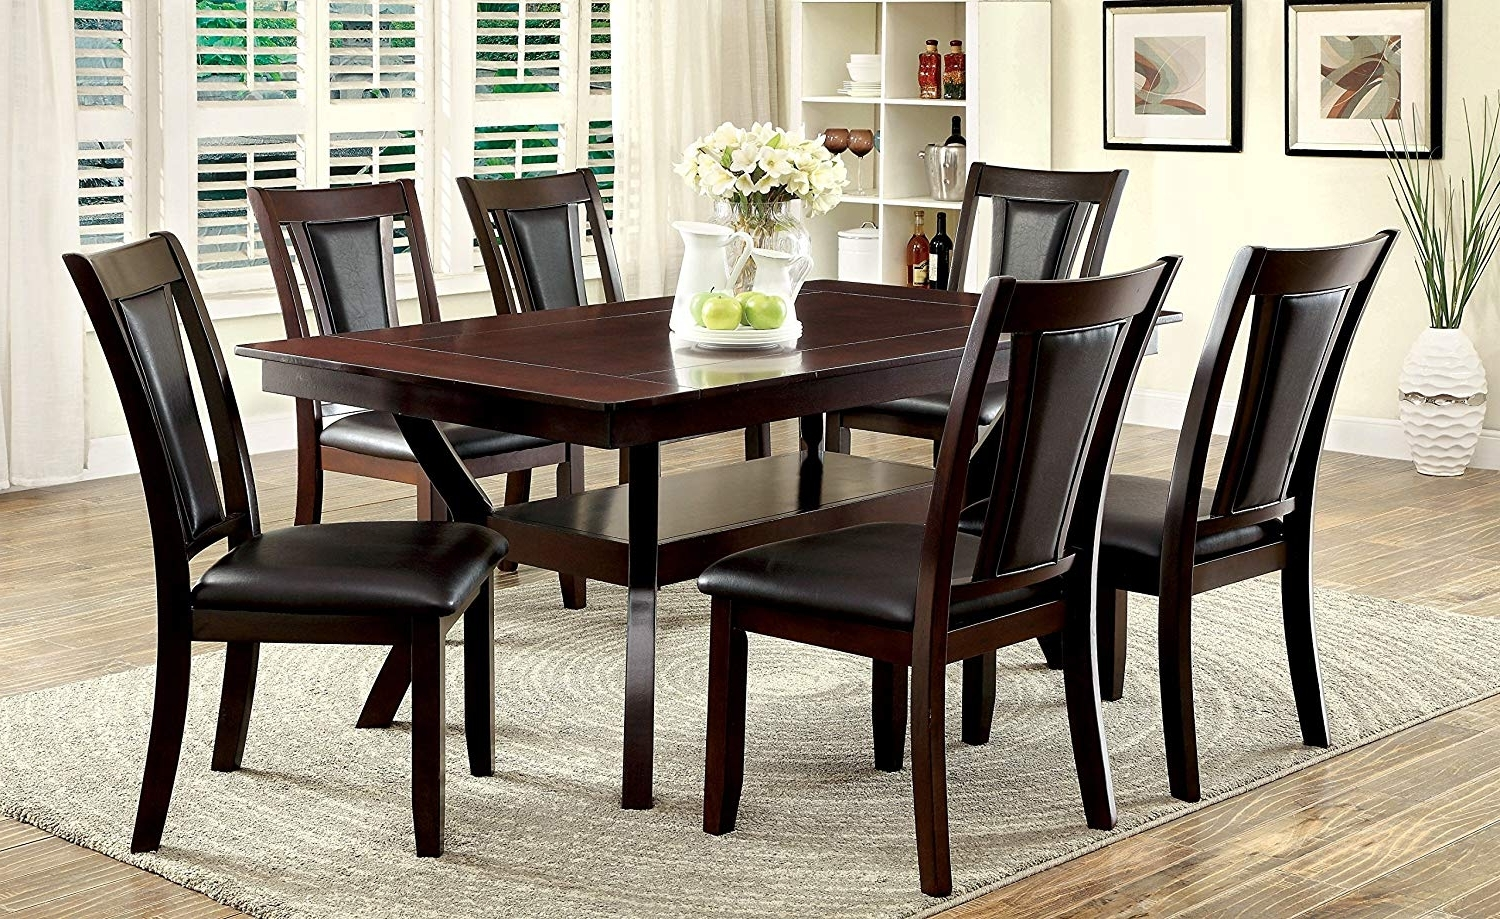 Amazon – Furniture Of America Dalcroze 7 Piece Modern Dining Set Pertaining To 2018 Amos 7 Piece Extension Dining Sets (View 14 of 25)